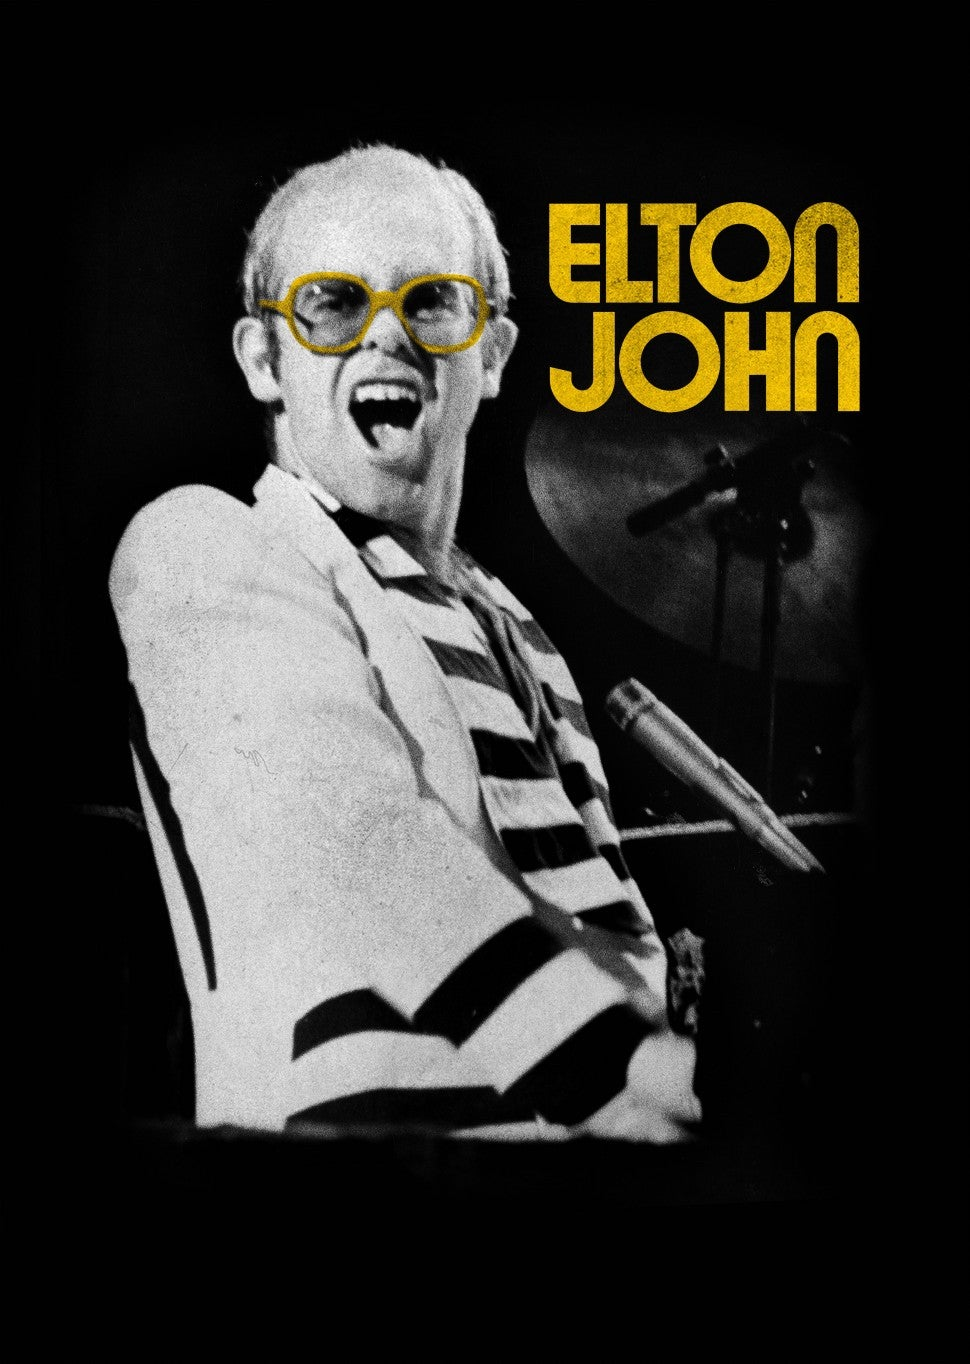 Elton John fans can now stream his songs and performances.